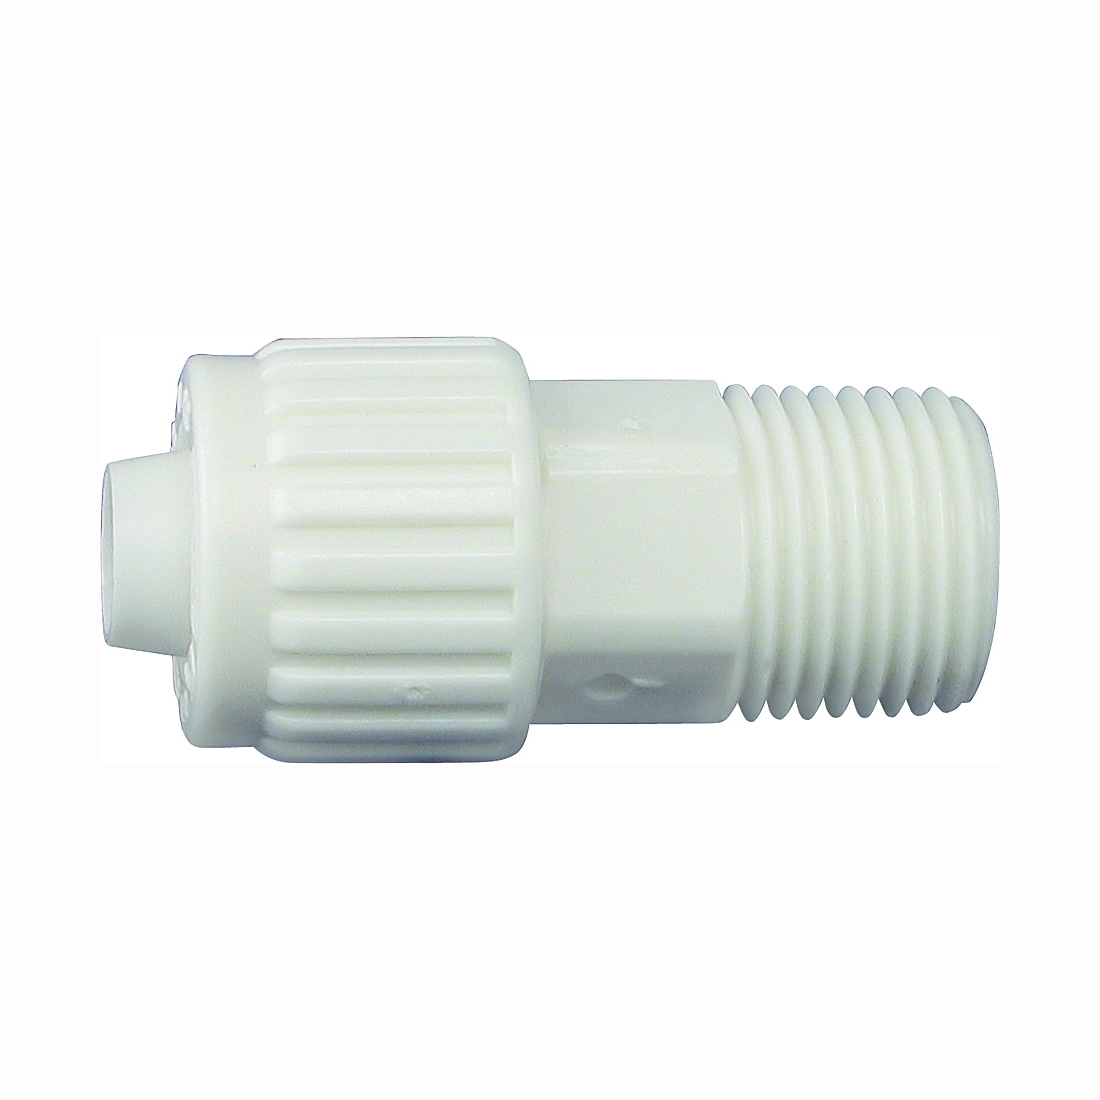 Picture of Flair-It 16842 Tube to Pipe Adapter, 1/2 in, PEX x MPT, Polyoxymethylene, White